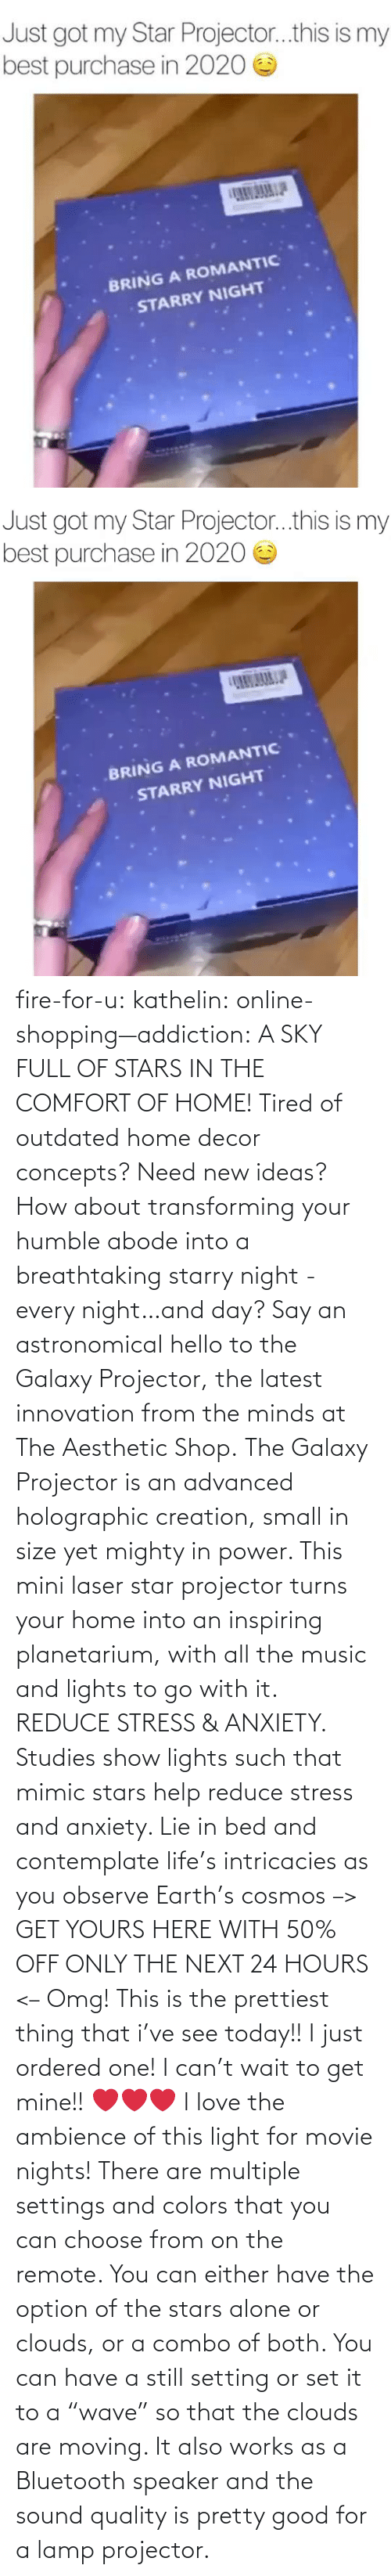 "Home: fire-for-u:  kathelin: online-shopping—addiction:  A SKY FULL OF STARS IN THE COMFORT OF HOME! Tired of outdated home decor concepts? Need new ideas? How about transforming your humble abode into a breathtaking starry night - every night…and day? Say an astronomical hello to the Galaxy Projector, the latest innovation from the minds at The Aesthetic Shop. The Galaxy Projector is an advanced holographic creation, small in size yet mighty in power. This mini laser star projector turns your home into an inspiring planetarium, with all the music and lights to go with it. REDUCE STRESS & ANXIETY. Studies show lights such that mimic stars help reduce stress and anxiety. Lie in bed and contemplate life's intricacies as you observe Earth's cosmos  –> GET YOURS HERE WITH 50% OFF ONLY THE NEXT 24 HOURS <–   Omg! This is the prettiest thing that i've see today!! I just ordered one! I can't wait to get mine!! ❤️️❤️️❤️️  I love the ambience of this light for movie nights! There are multiple settings and colors that you can choose from on the remote. You can either have the option of the stars alone or clouds, or a combo of both. You can have a still setting or set it to a ""wave"" so that the clouds are moving. It also works as a Bluetooth speaker and the sound quality is pretty good for a lamp projector."